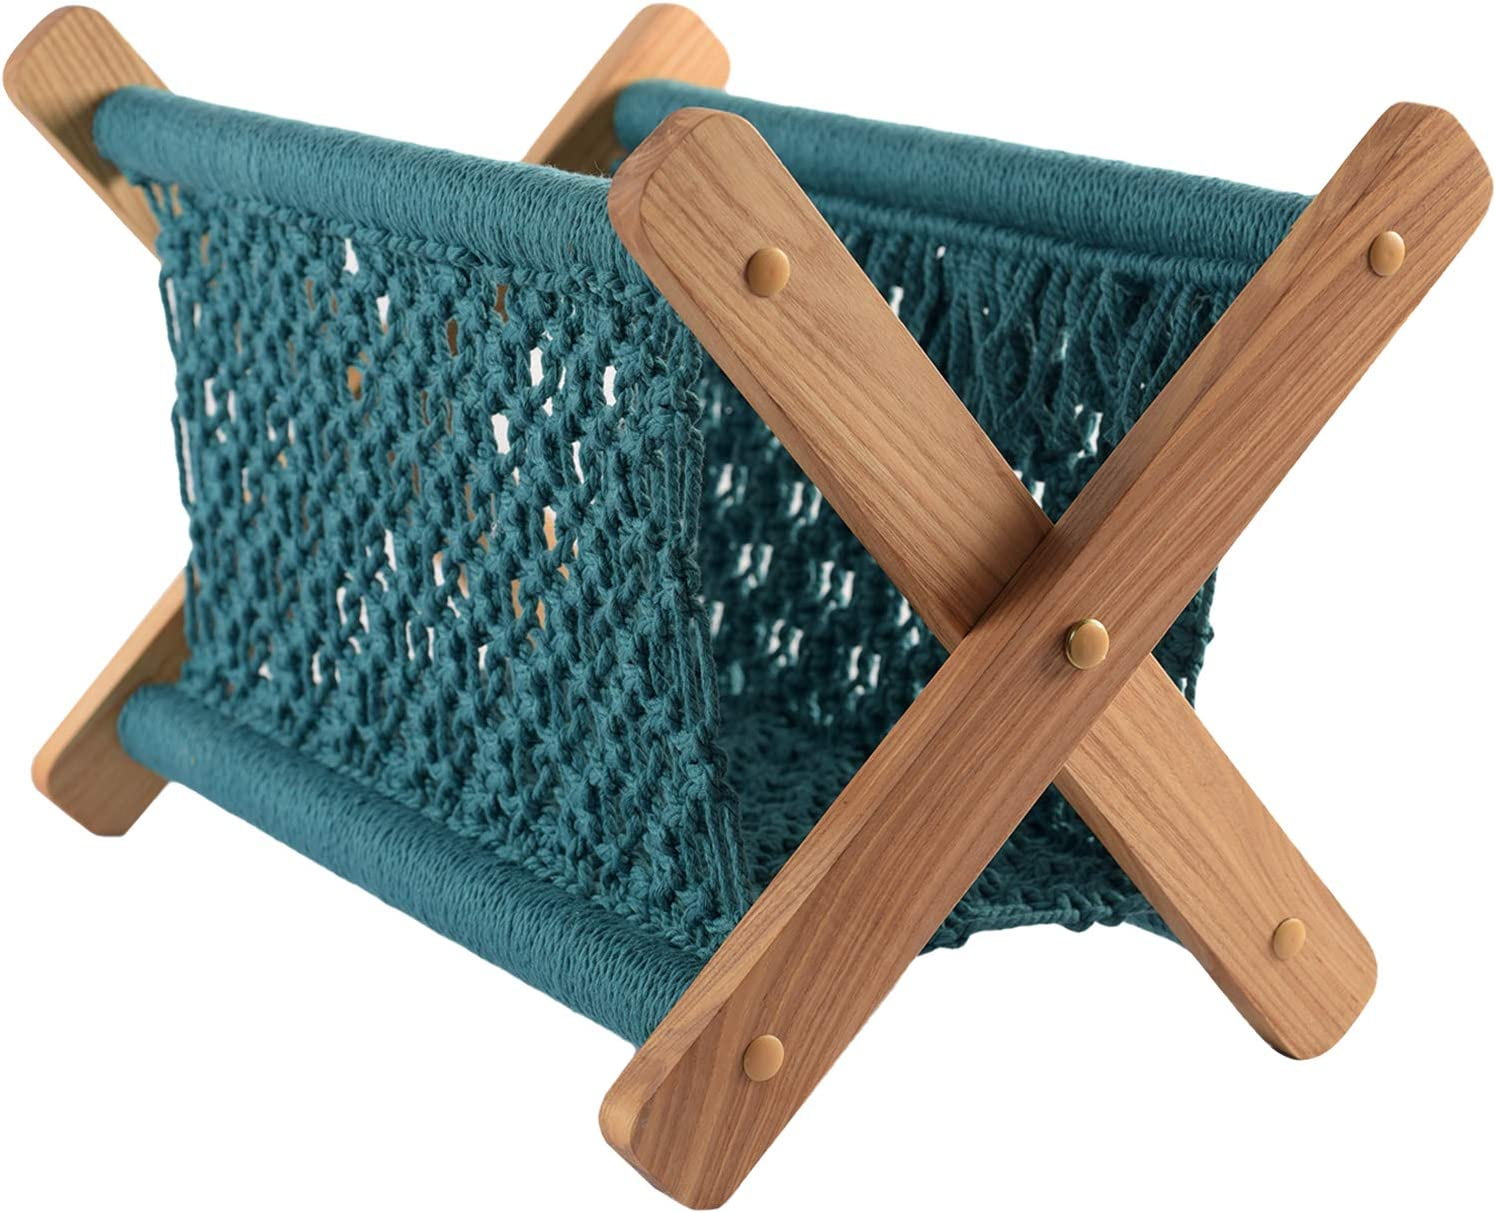 Macrame Boho Magazine Holder, Magazine Rack Boho Decor, Boho Shelves for Towel, Books, Newspapers, Notebook, Tablets, Living Room, Office, Boho Wall Decor For Bedroom |14x13x10 In - Teal